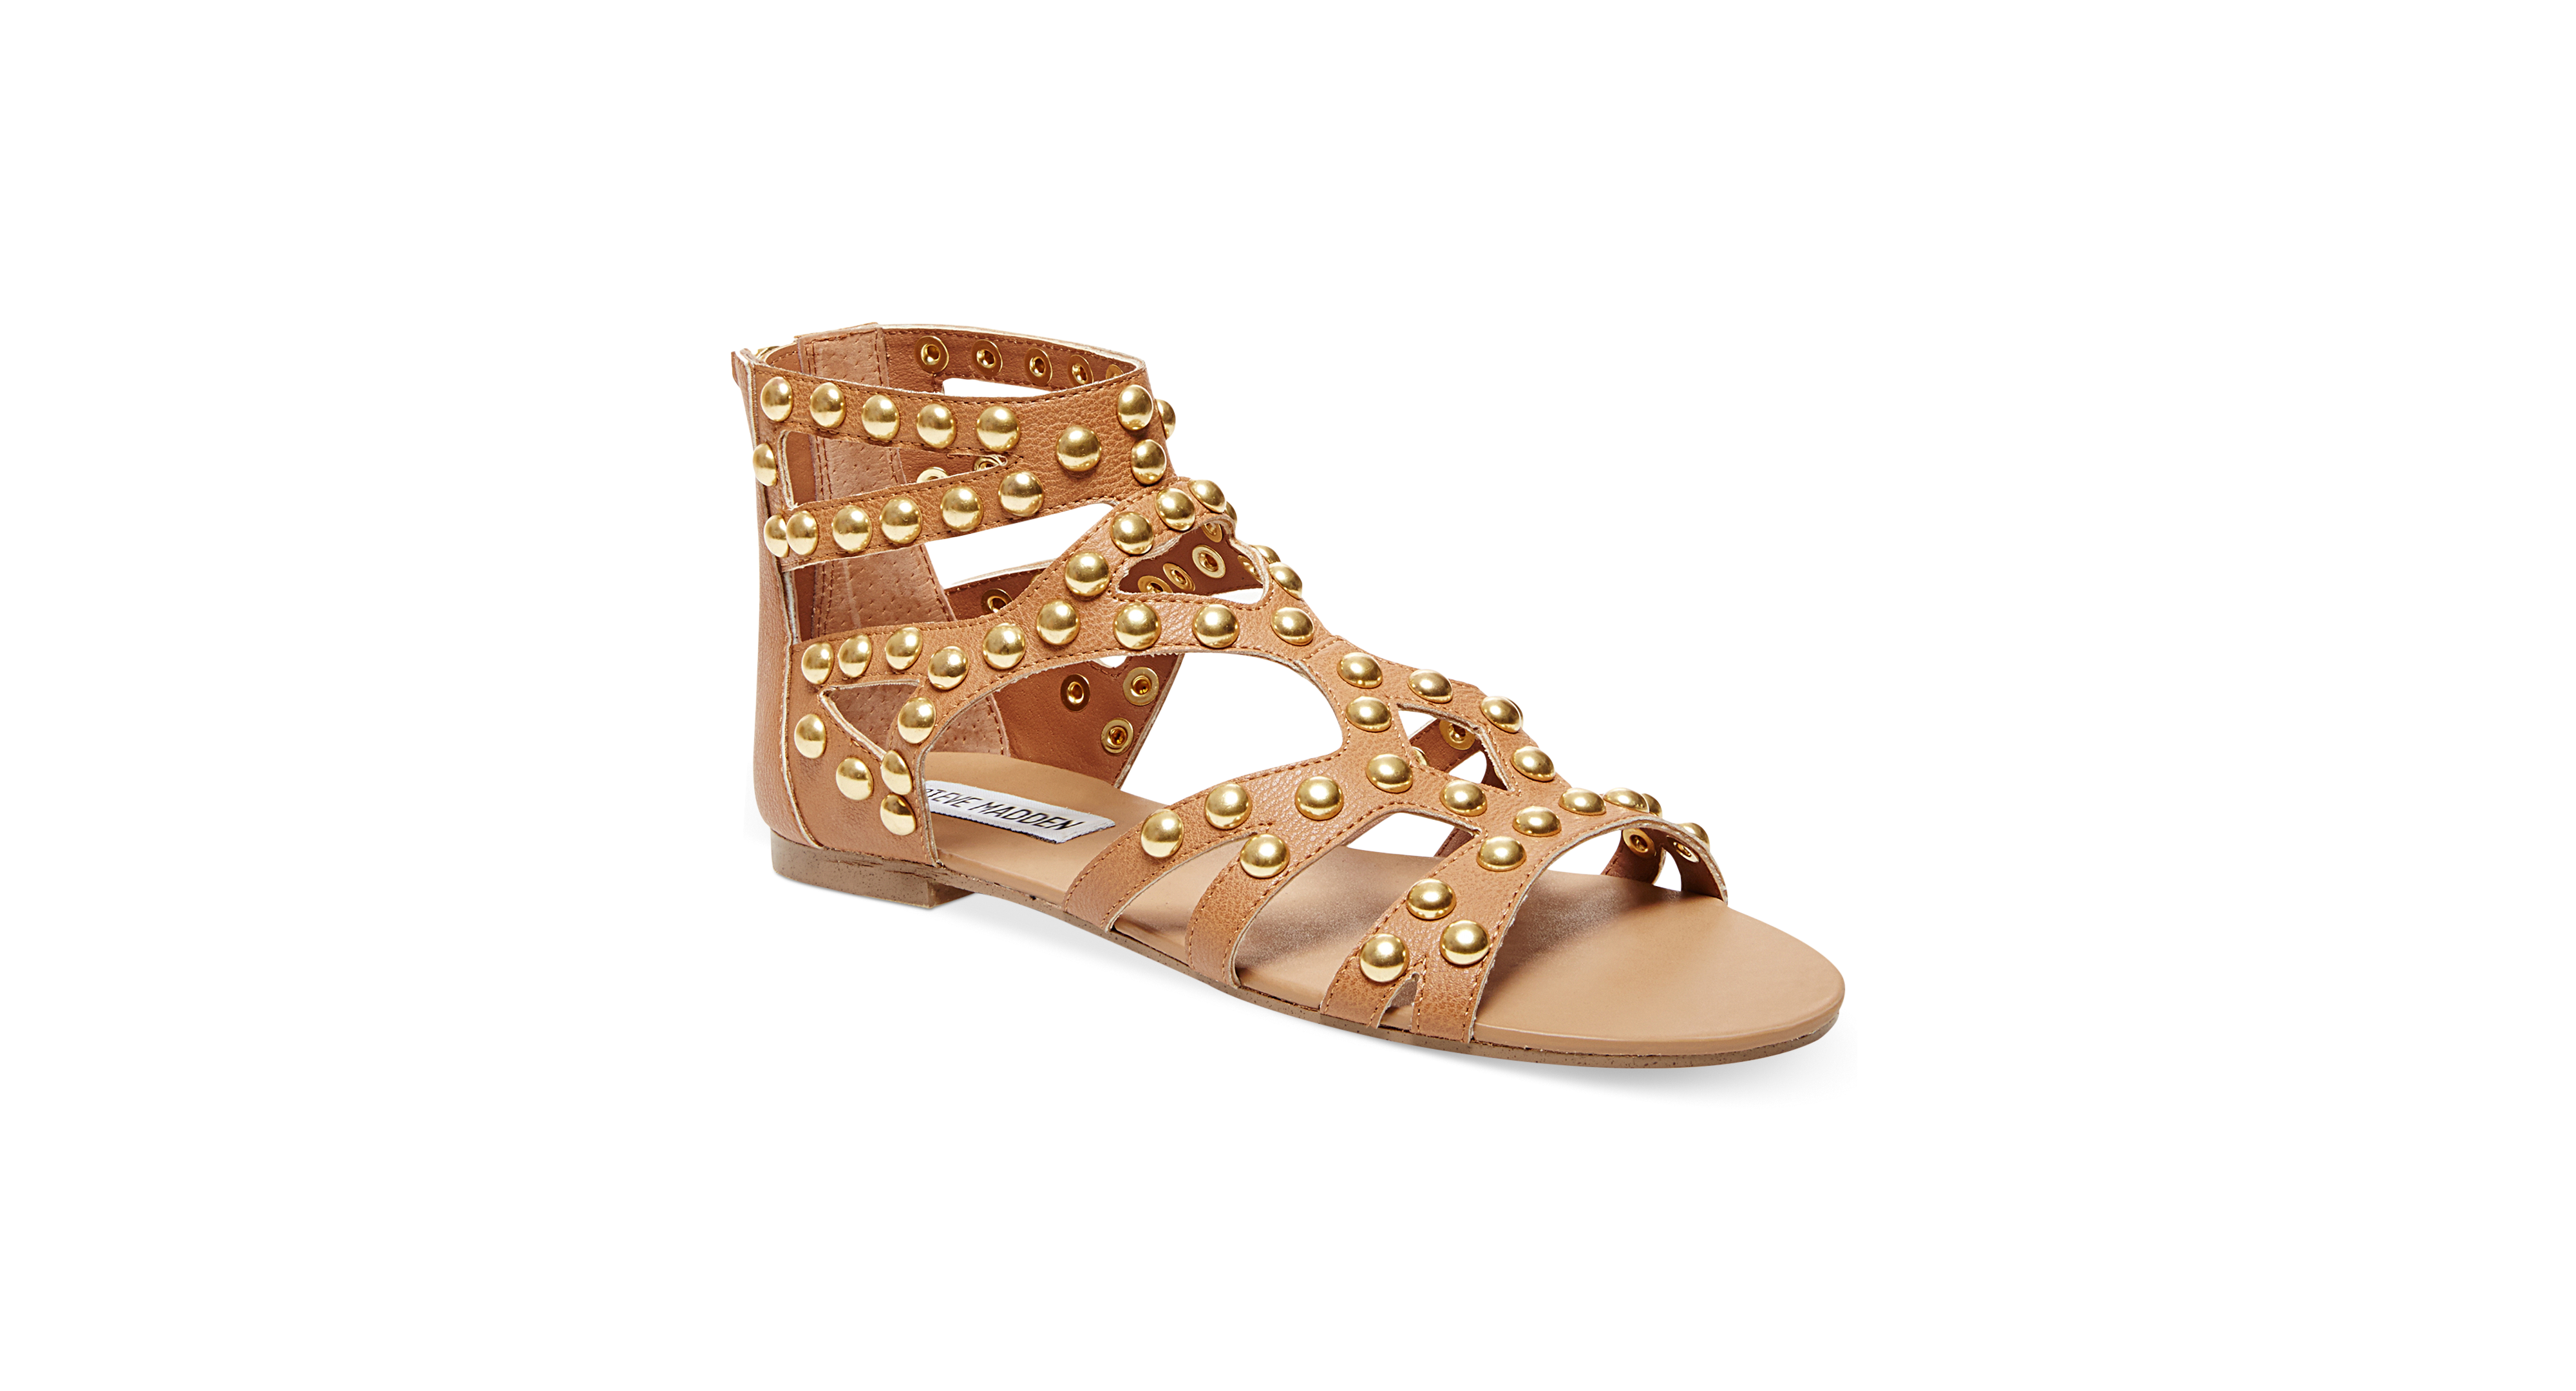 Steve Madden Women's Culver-s Embellished Gladiator Flat Sandals (Only at Macy's)